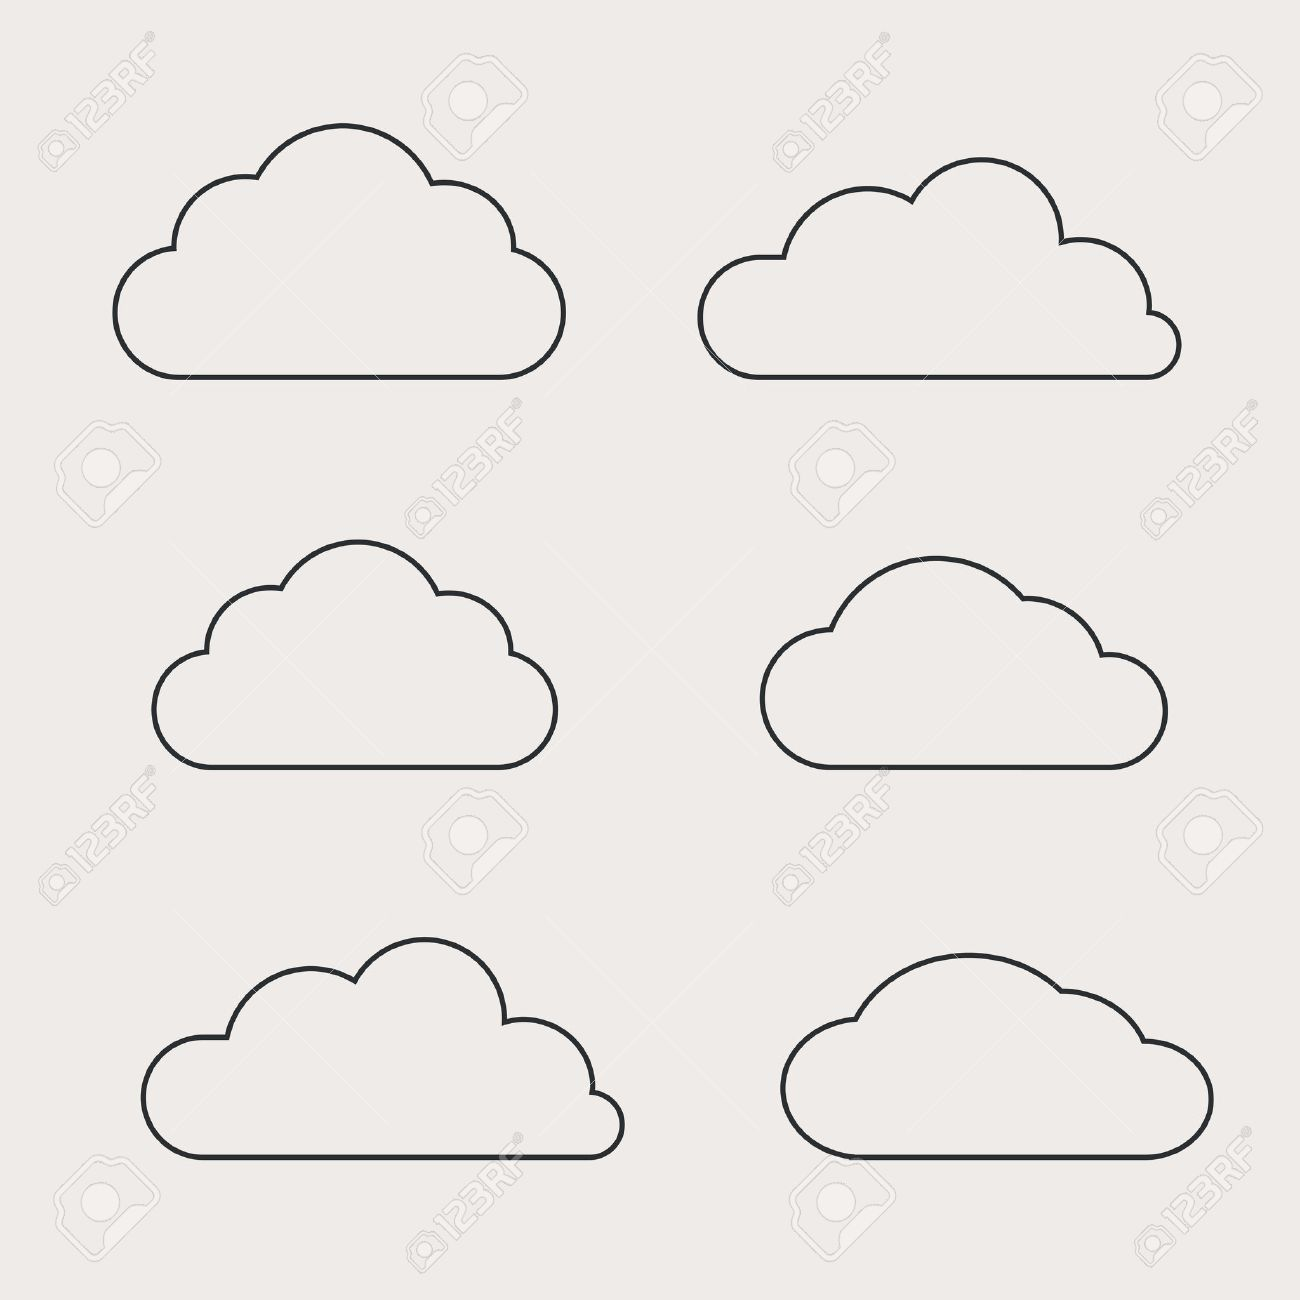 Cloud shapes collection. Cloud icons for cloud computing web and - 36763959